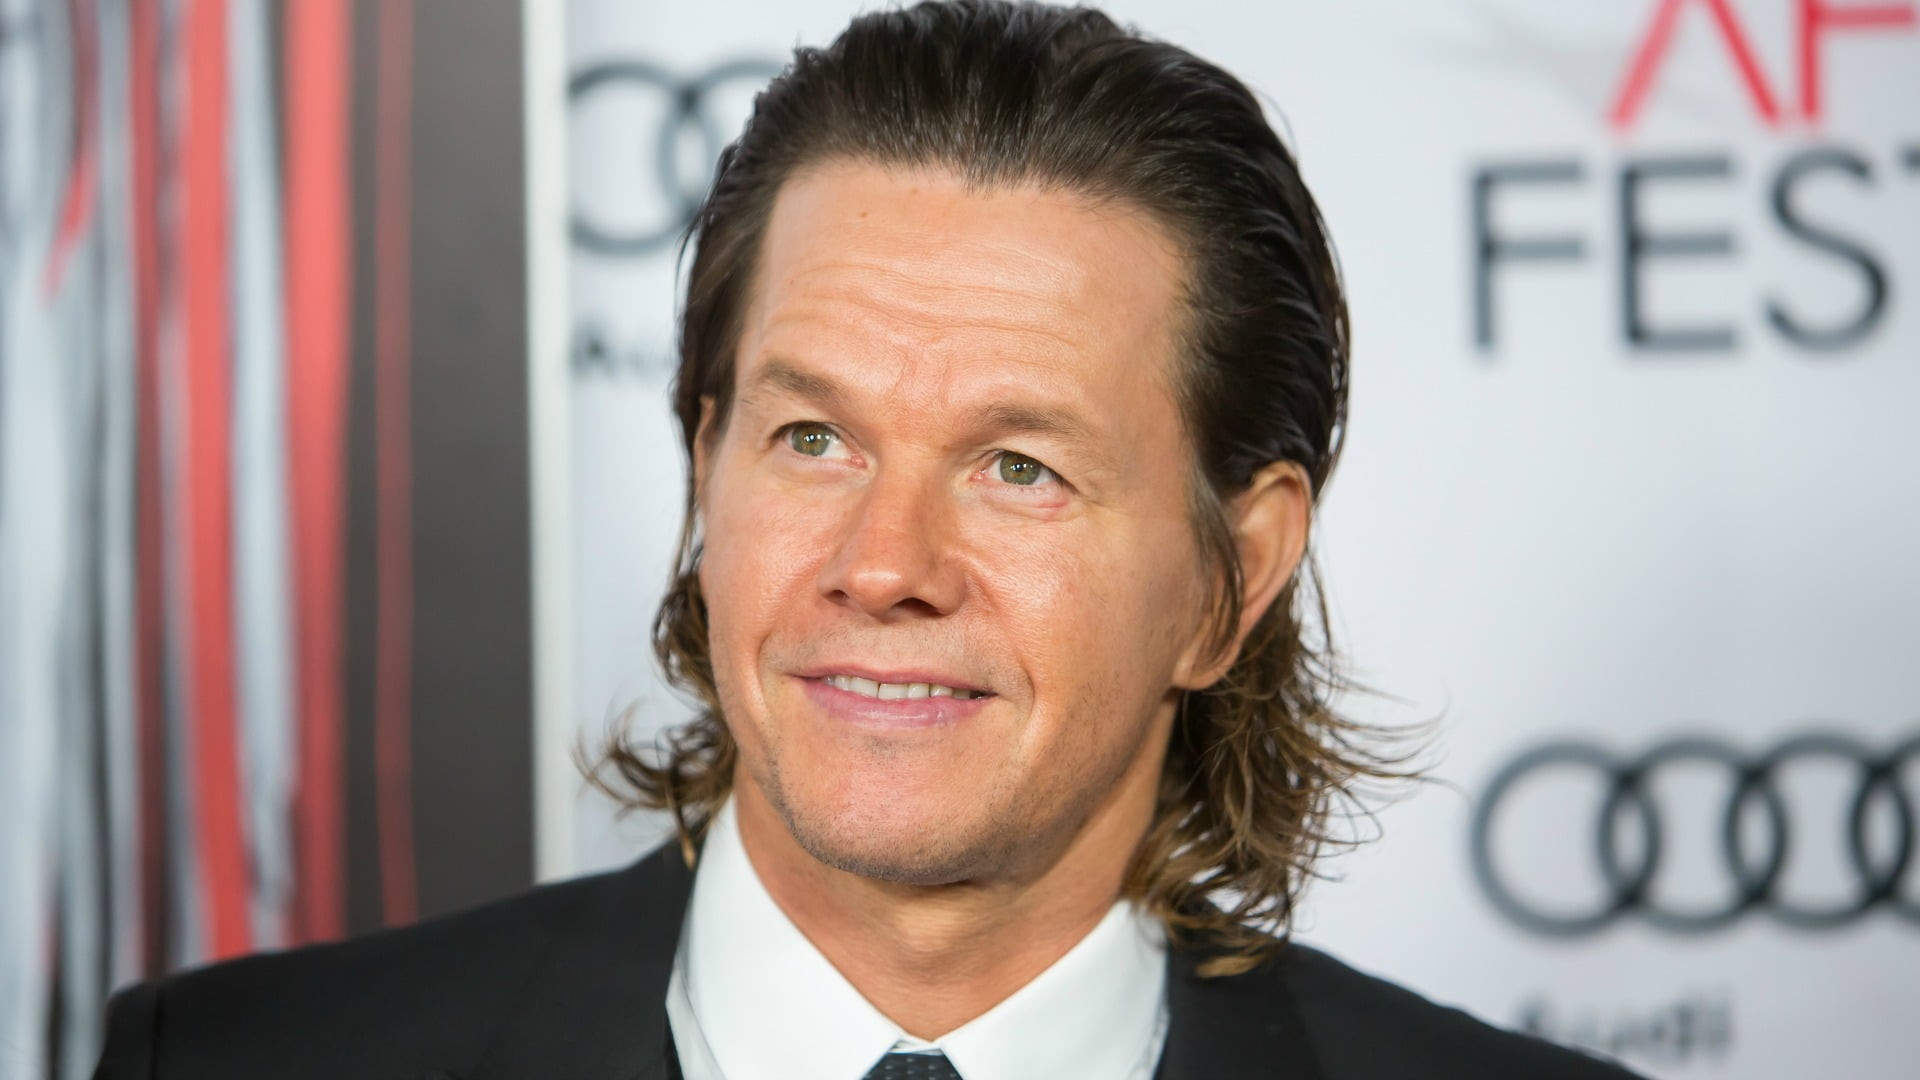 MARK WAHLBERG PAID MONEY TO APPEAR IN FILMS